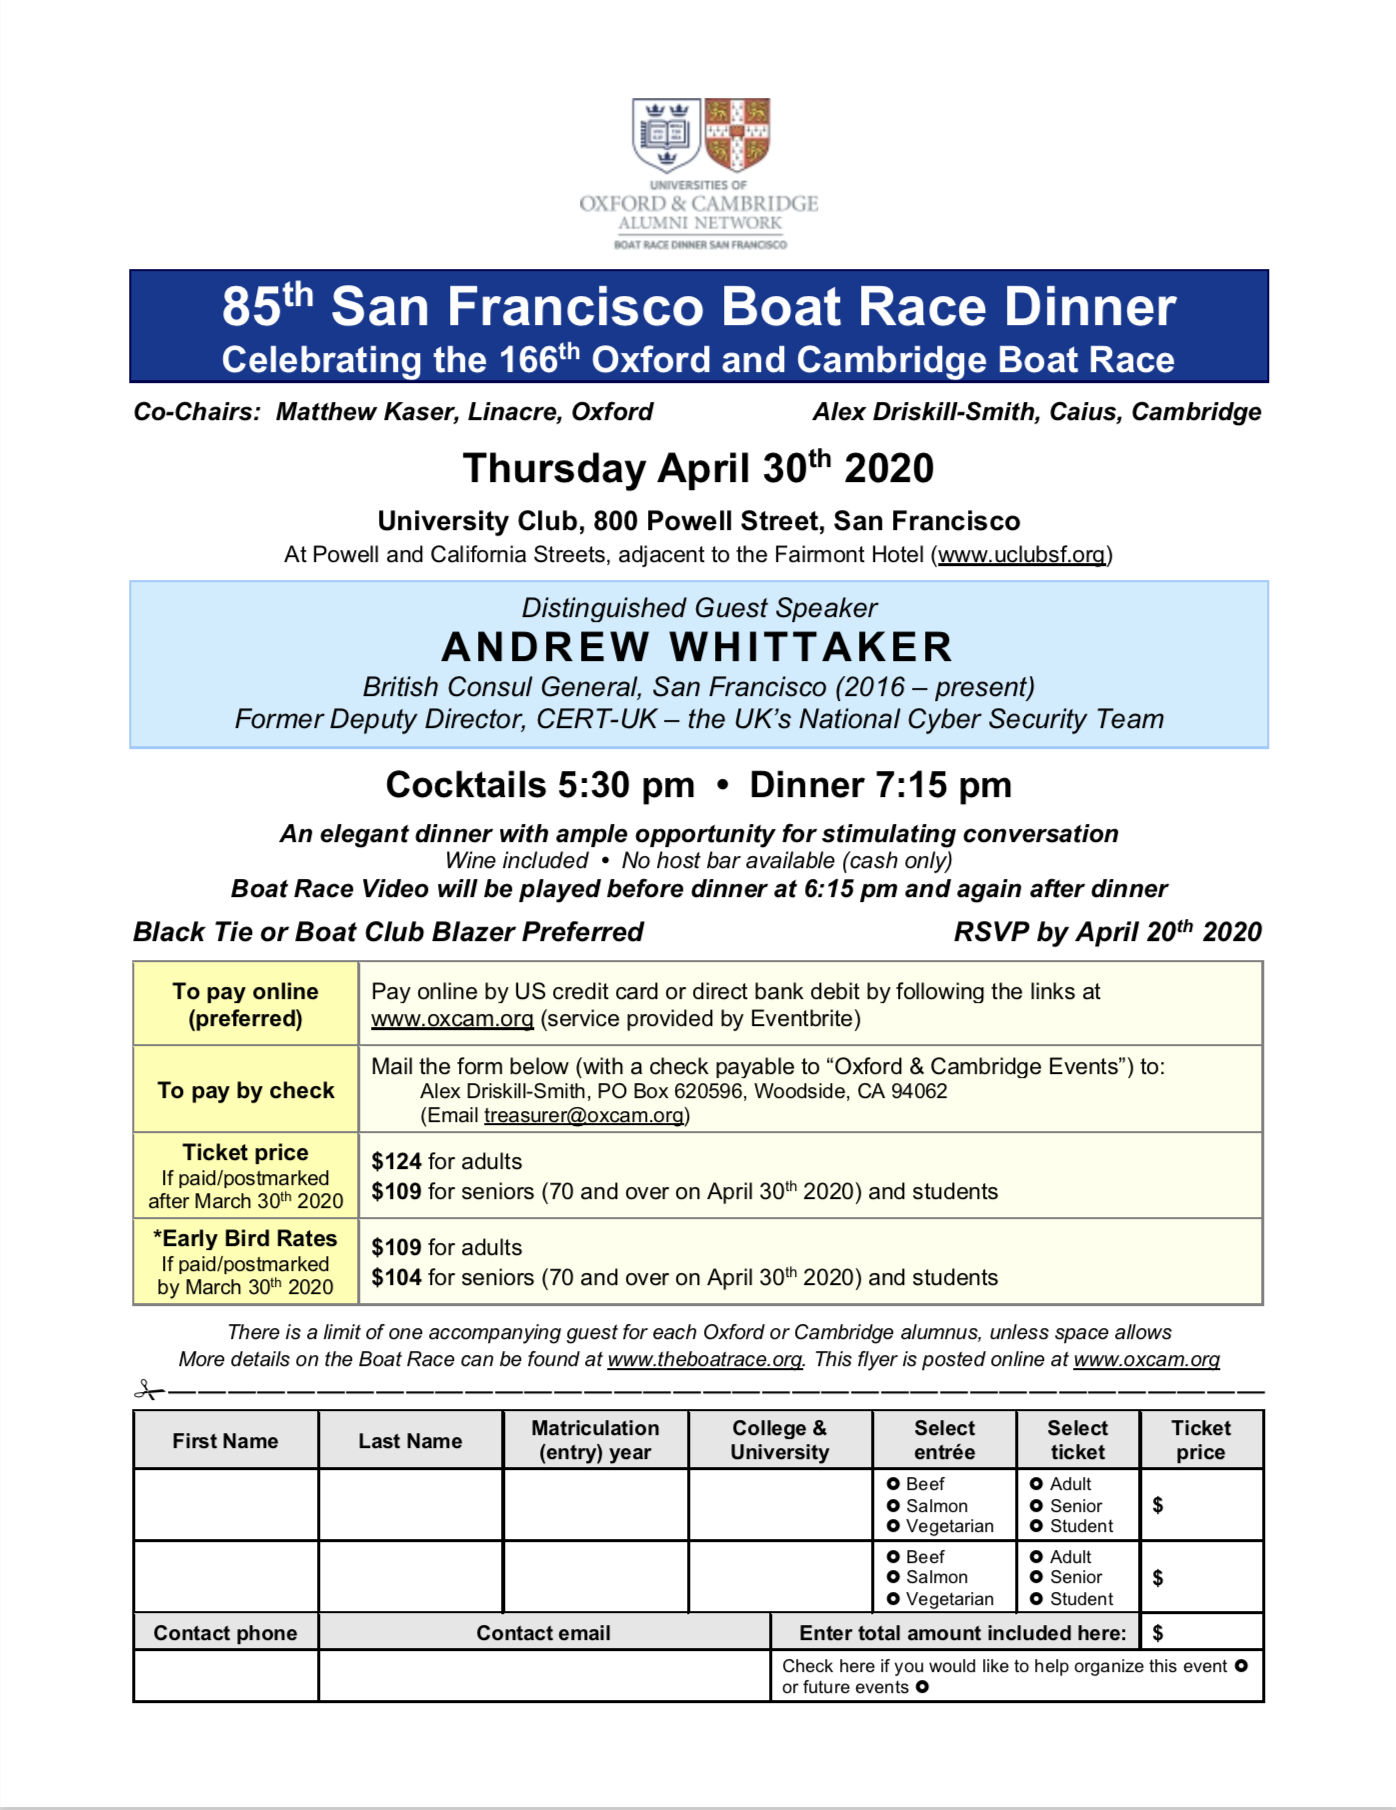 2020 Boat Race Dinner flyer